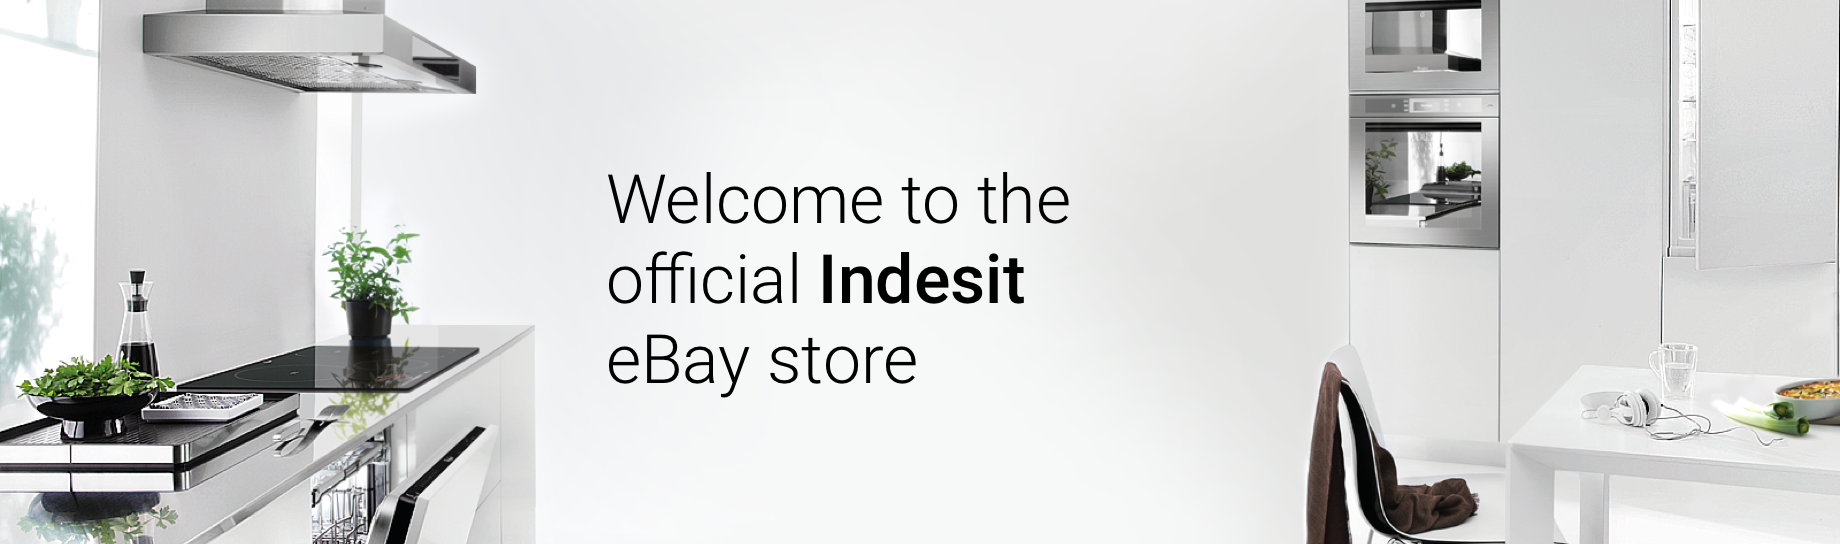 Welcome to the official Indesit eBay store